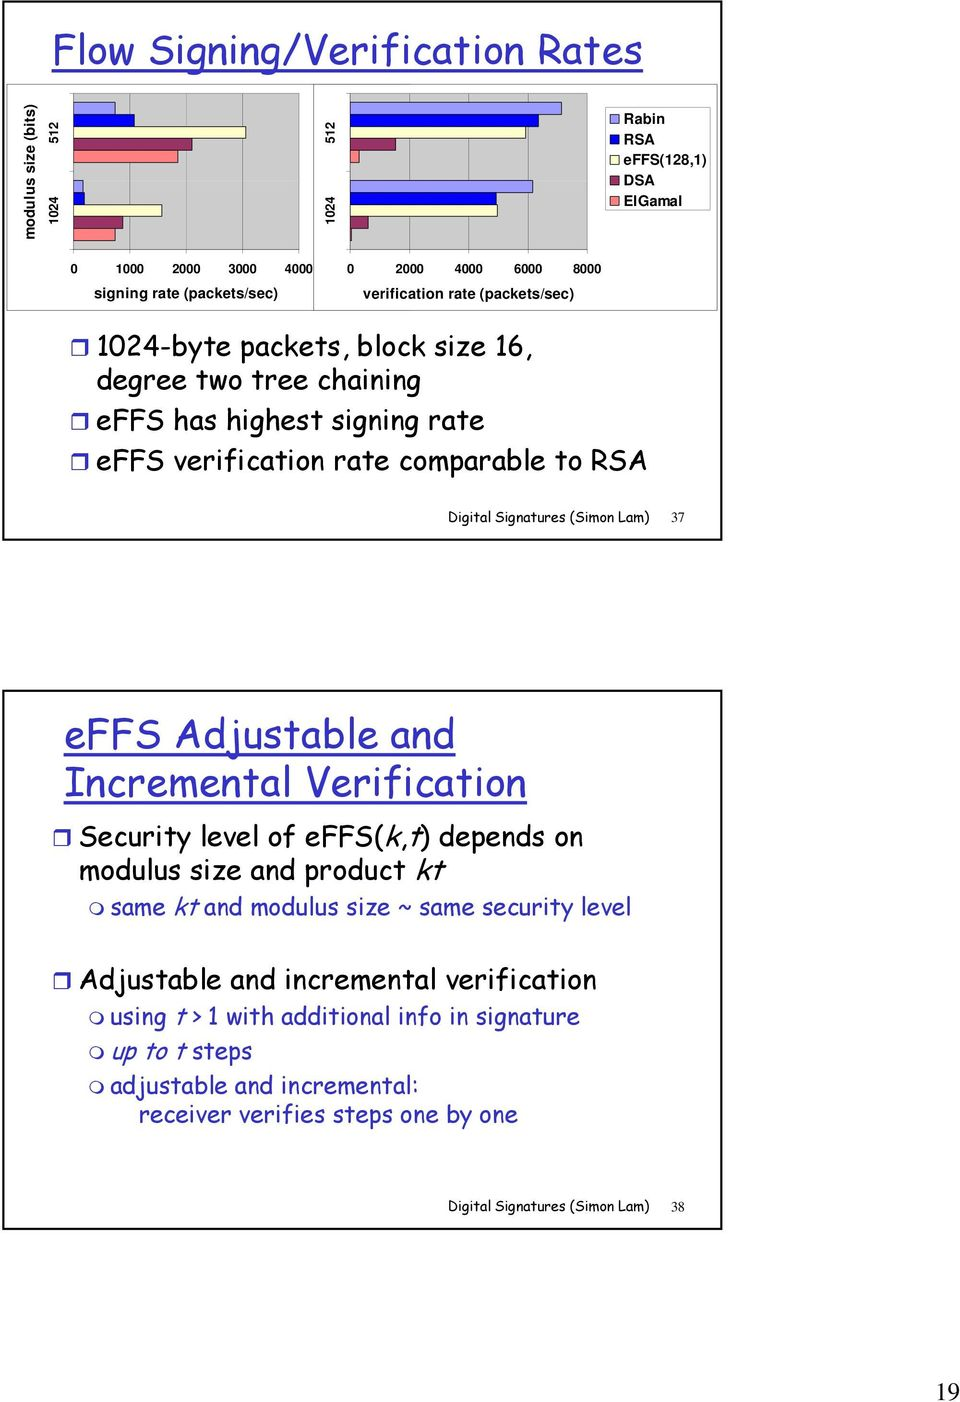 Digital Signatures (Simon Lam) 37 effs Adjustable and Incremental Verification Security level of effs(k,t) depends on modulus size and product kt same kt and modulus size ~ same security